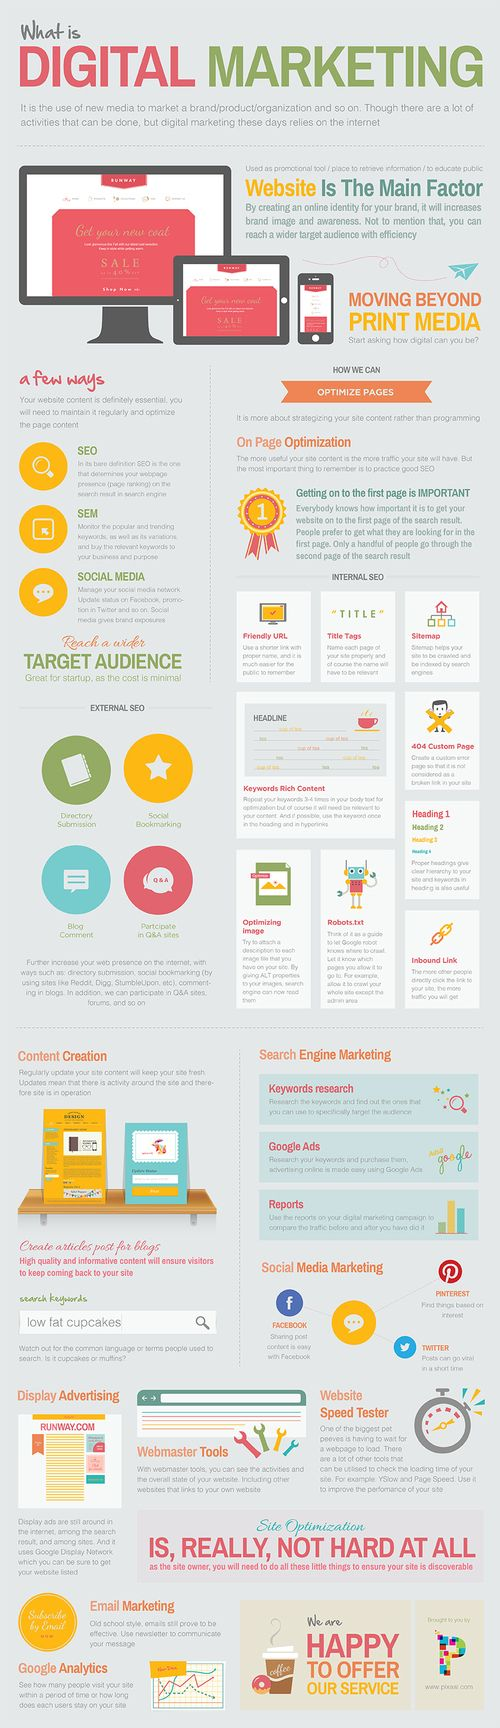 What is Digital Marketing? (infographic)